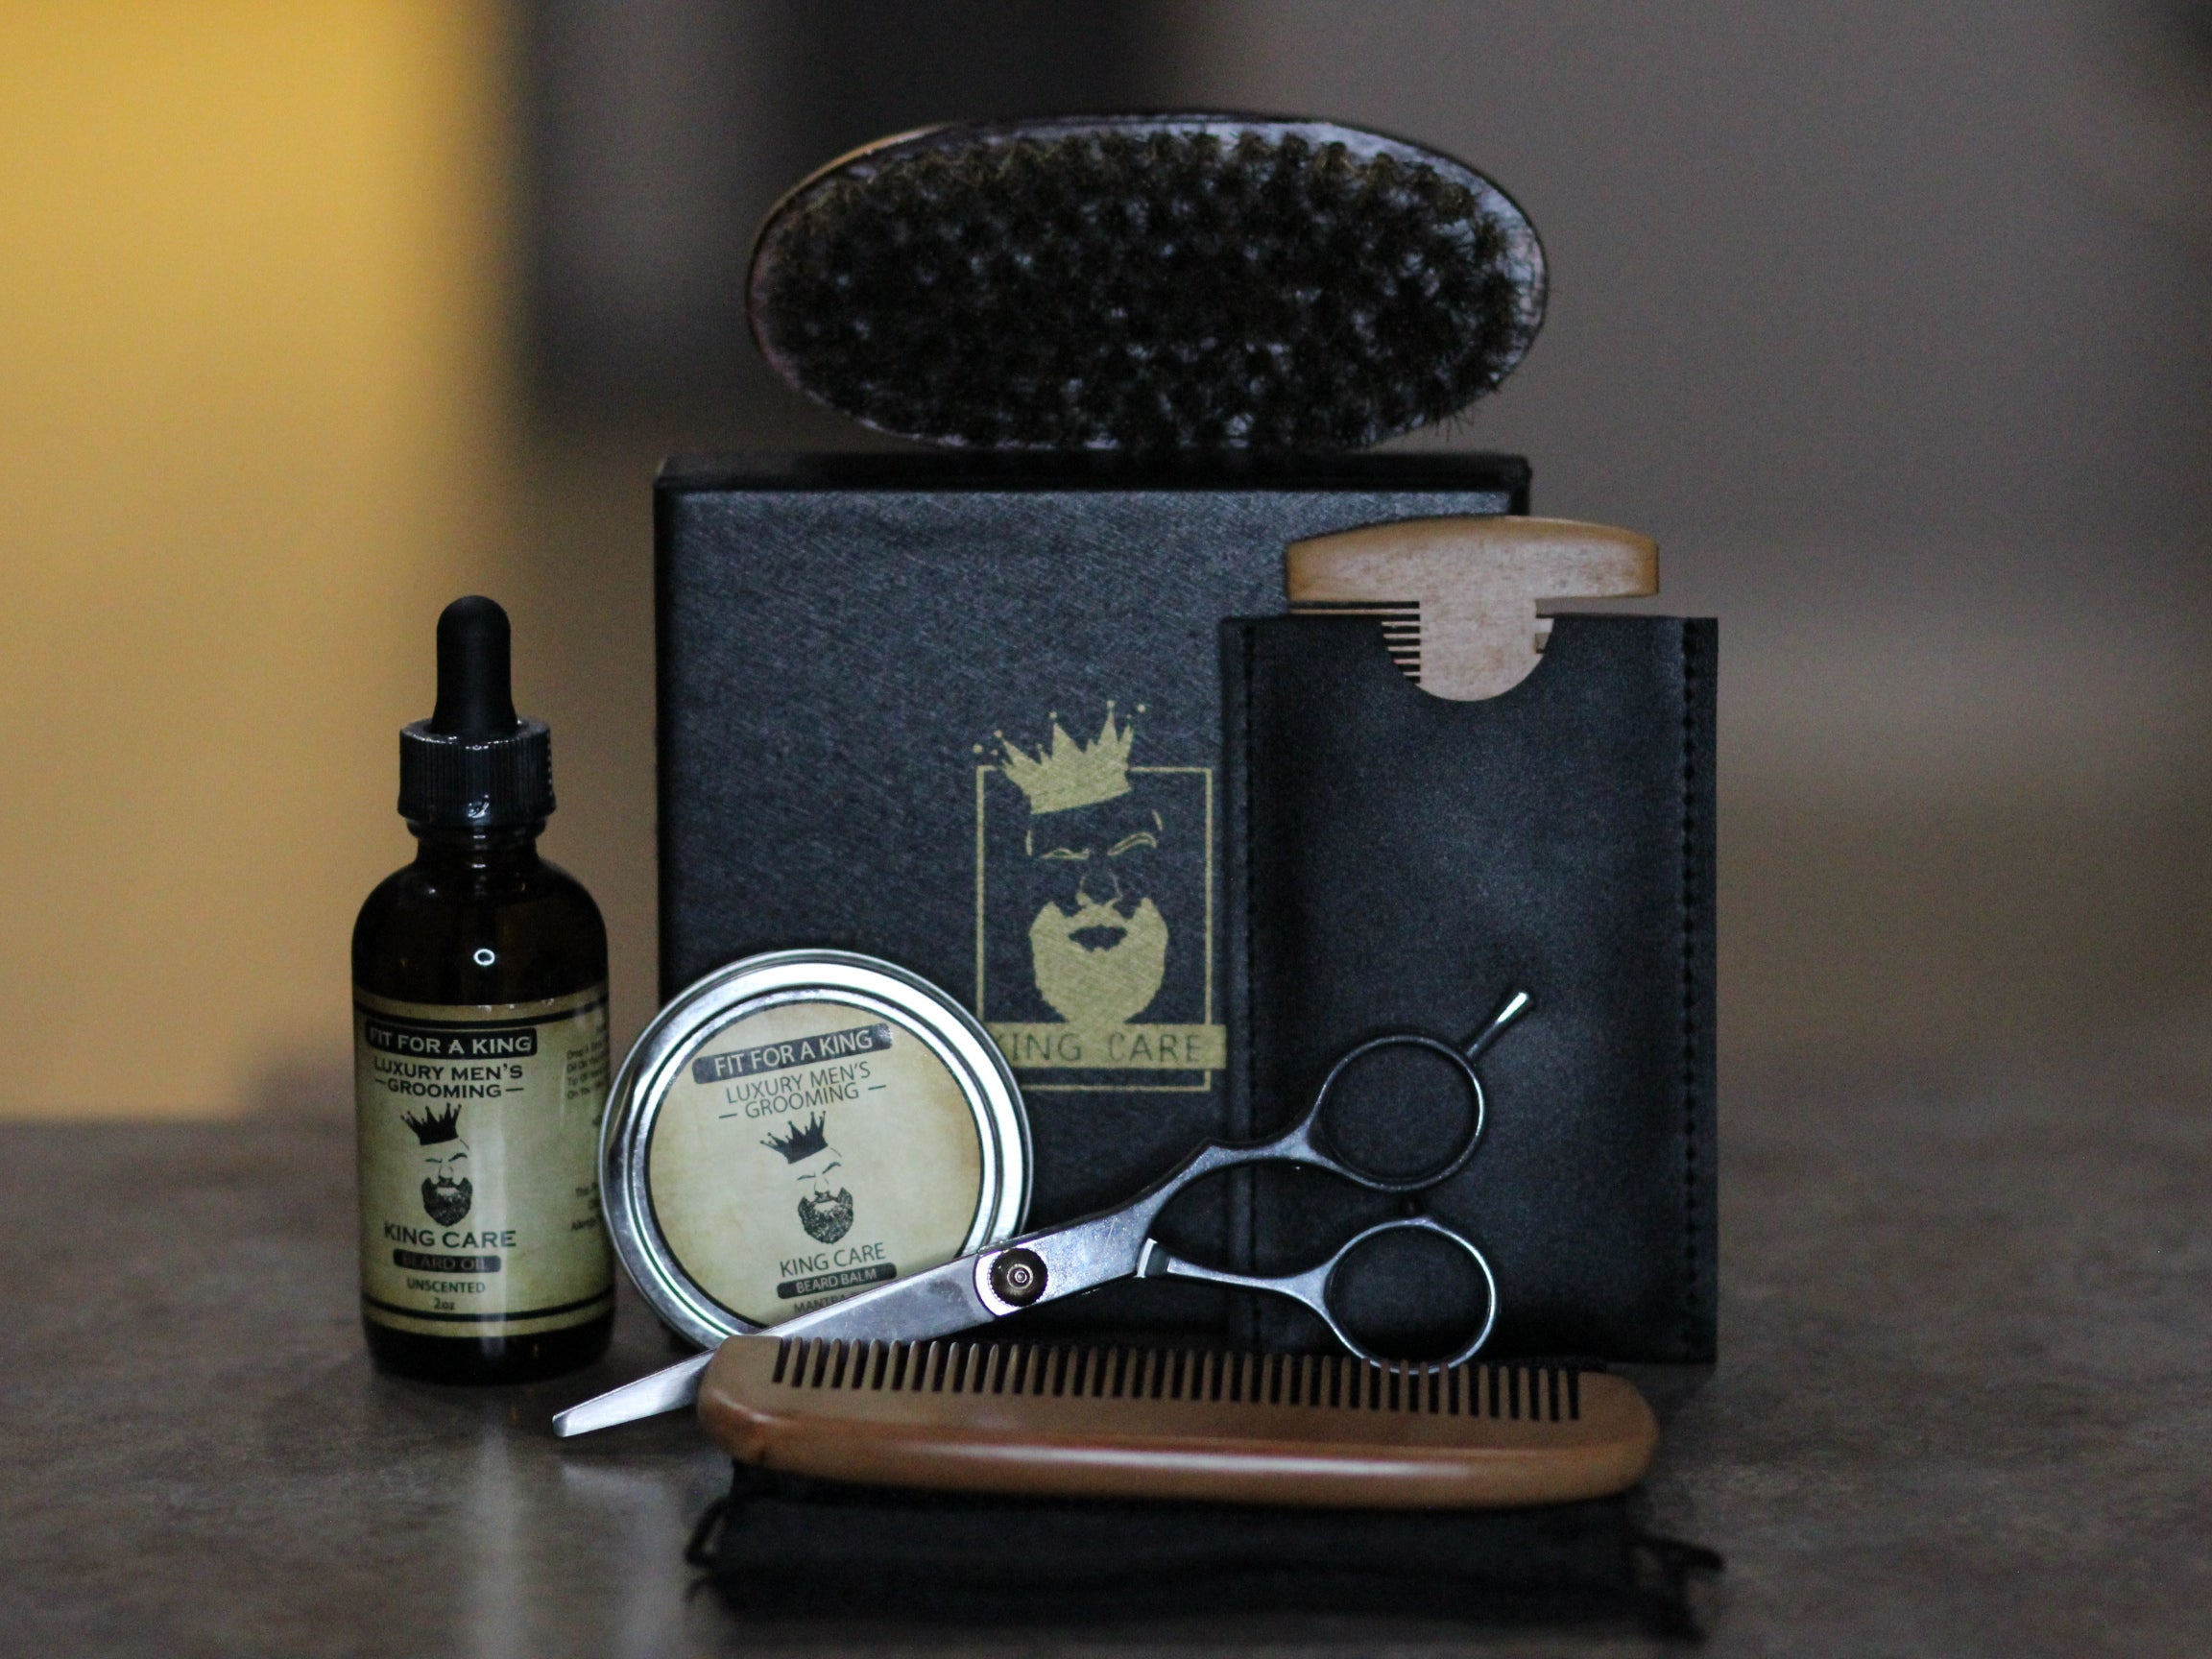 A Kings Grooming Kit